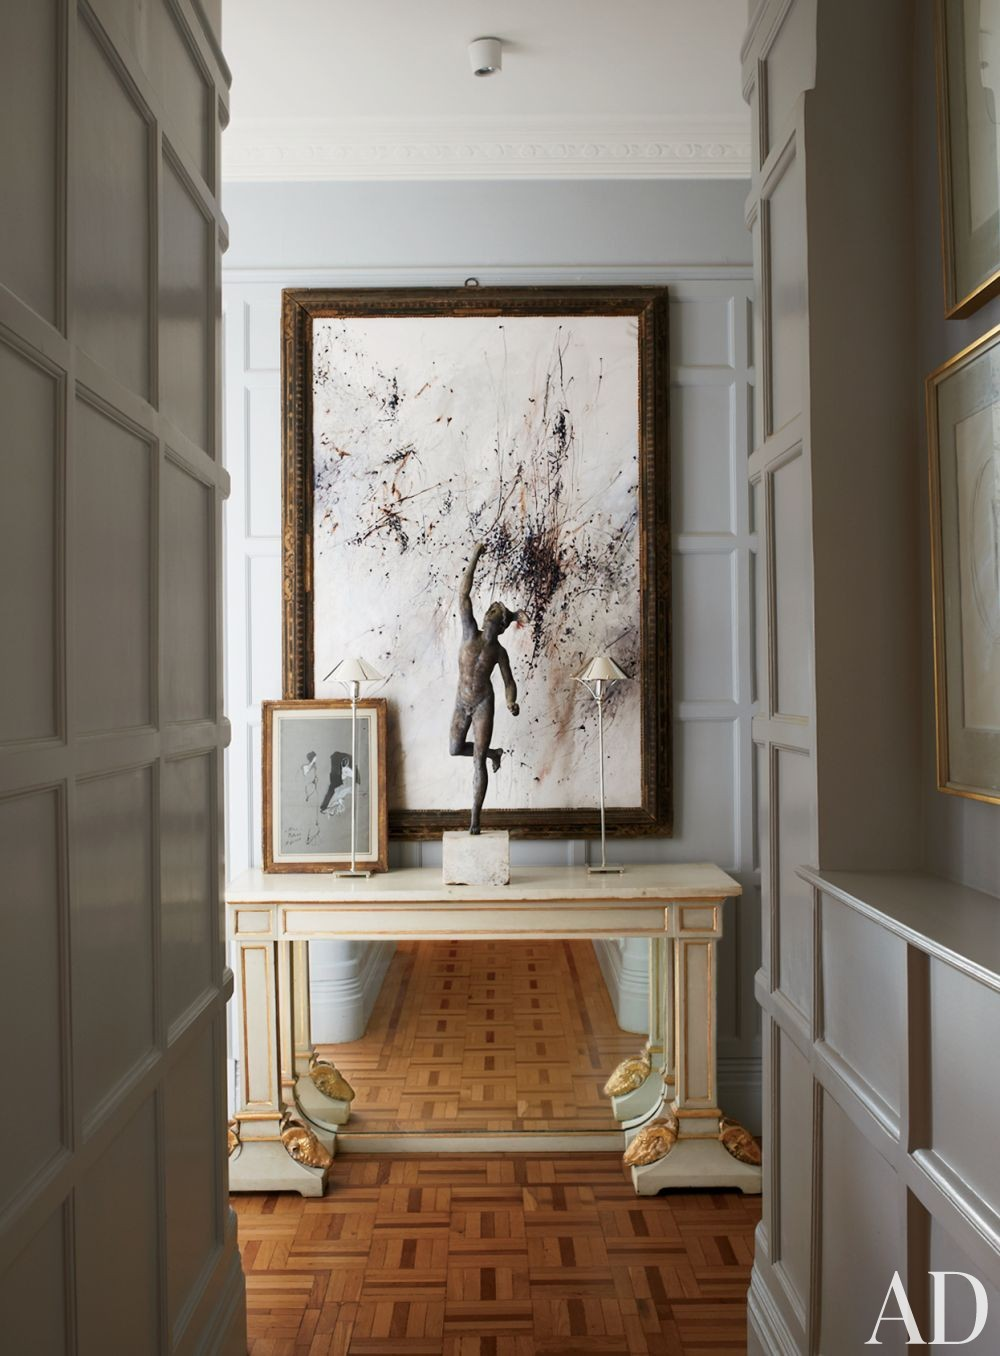 Traditional Entrance Hall by Paolo Moschino and Philip Vergeylen in London, England